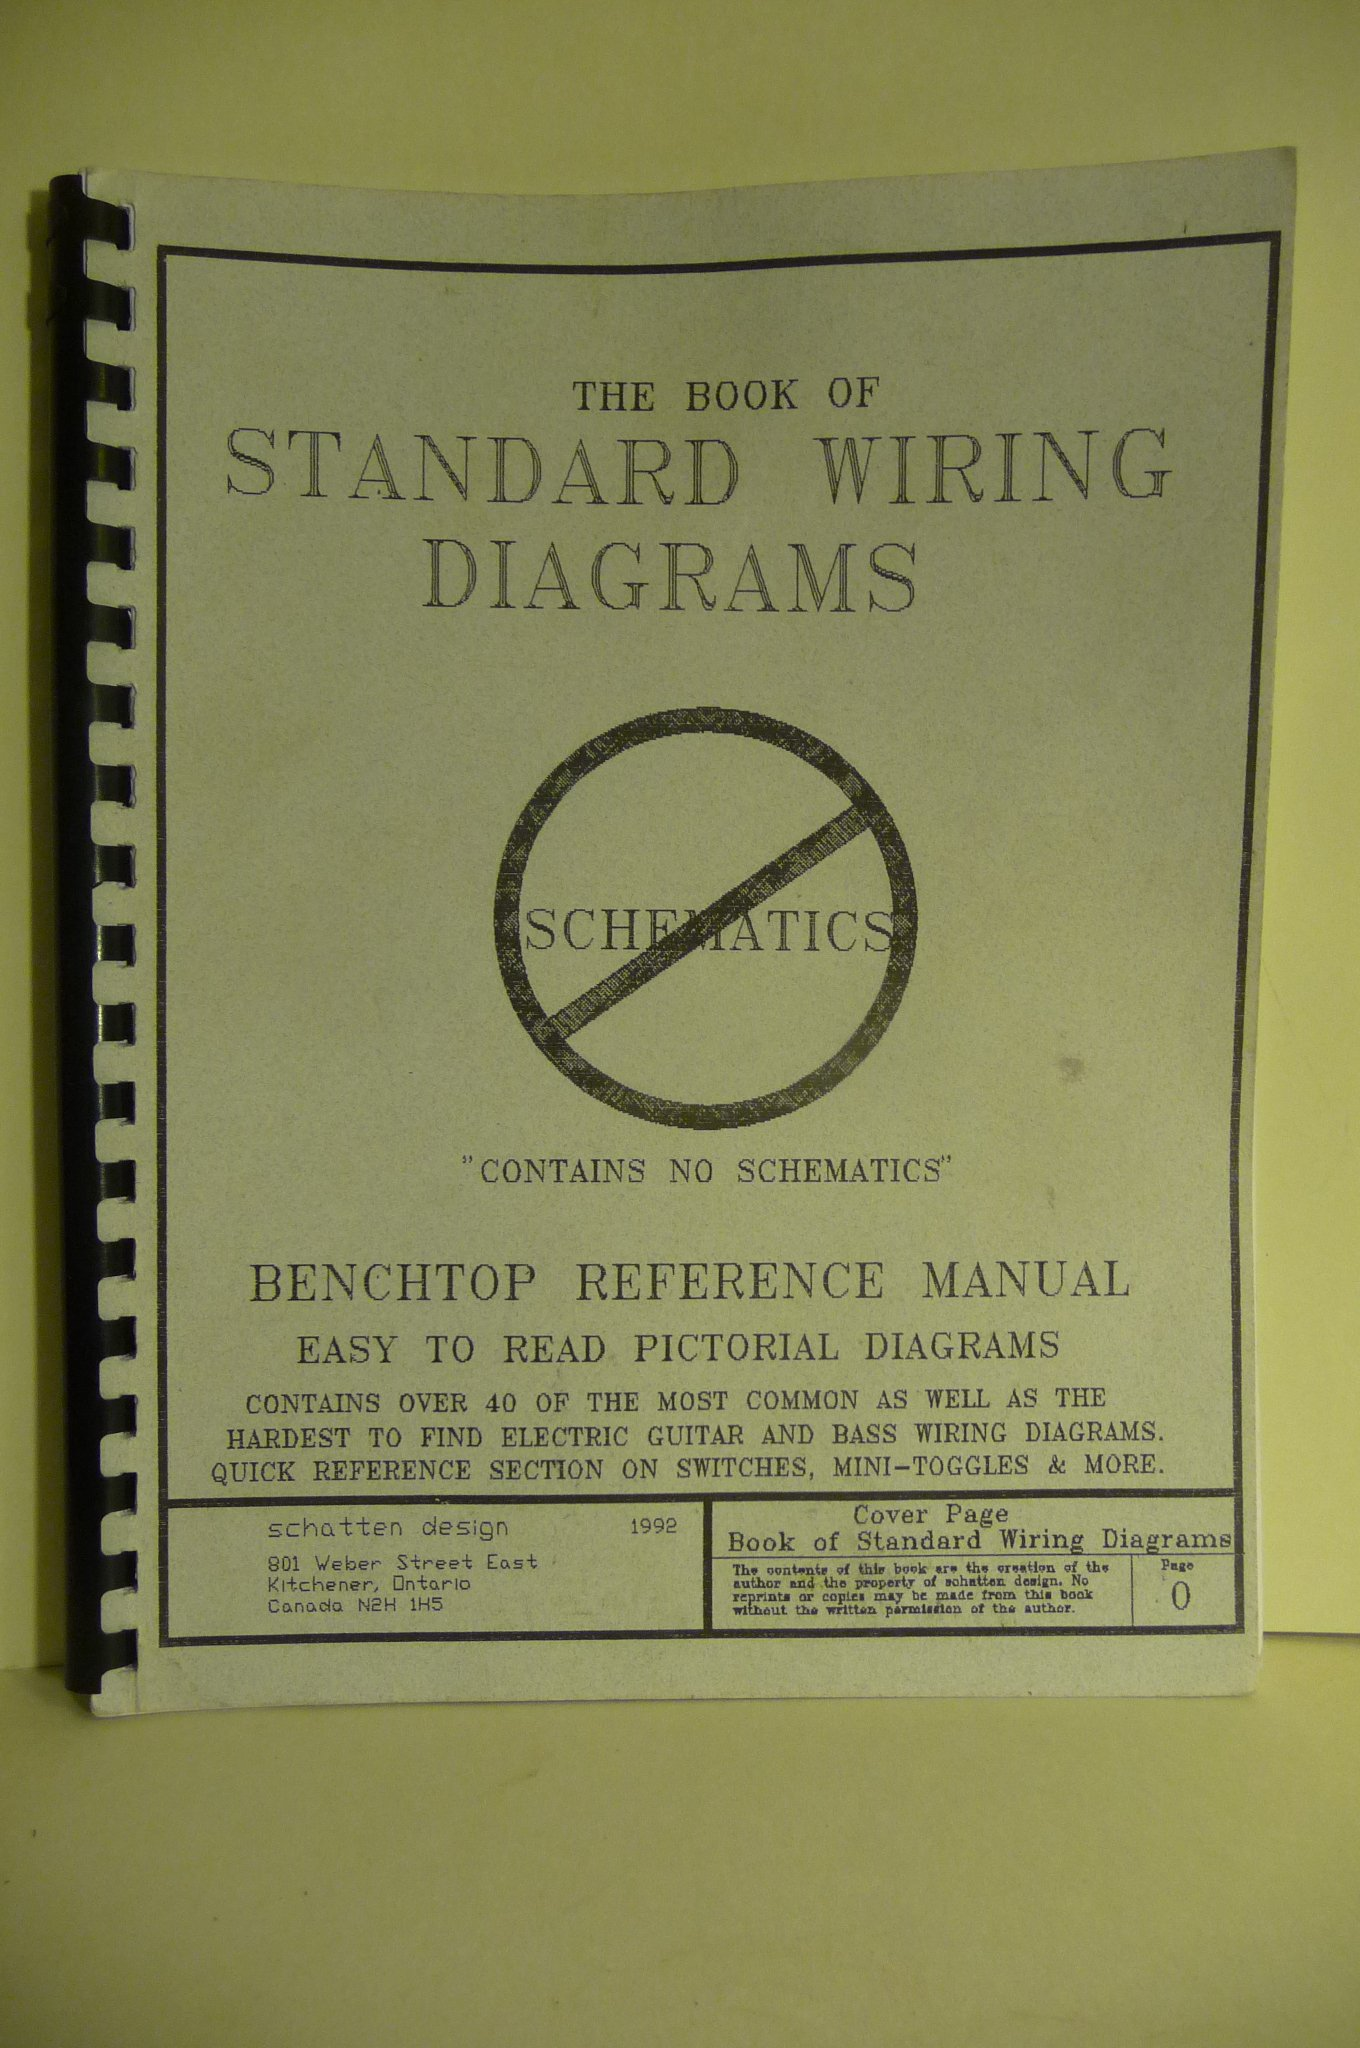 The New Book Of Standard Wiring Diagrams Benchtop Reference Manual Pictorial Diagram Les Schatten Books